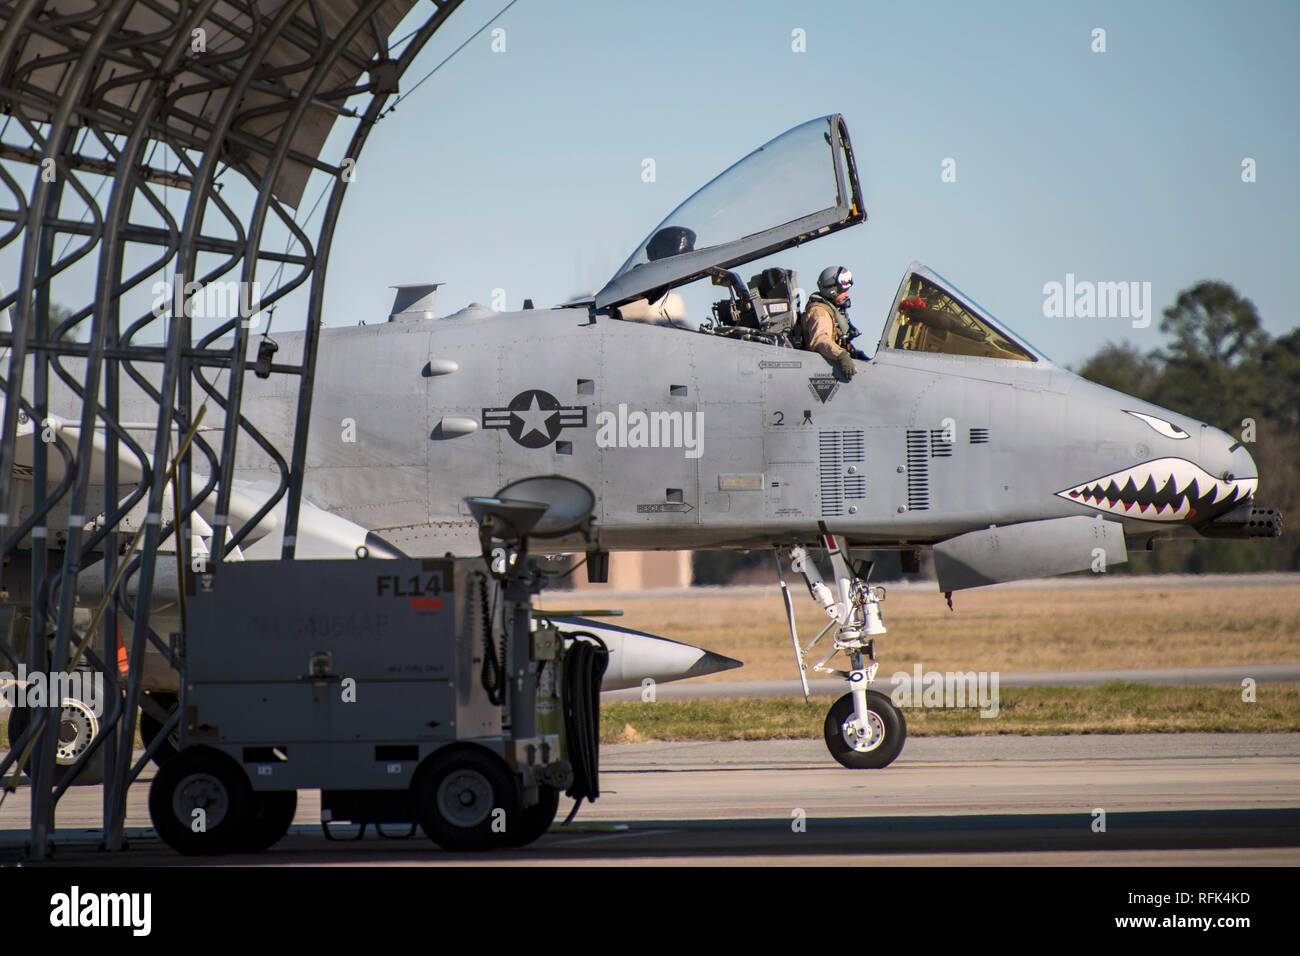 An A-10C Thunderbolt II from the 75th Fighter Squadron at Moody Air Force Base, Ga., returns from supporting Operation Freedom's Sentinel, Jan. 25, 2019. The A-10C Thunderbolt II, which has an increased loiter time and weapons capabilities, deployed to southwest Asia in support of ground forces. (U.S. Air Force photo By Airman First Class Eugene Oliver) Stock Photo